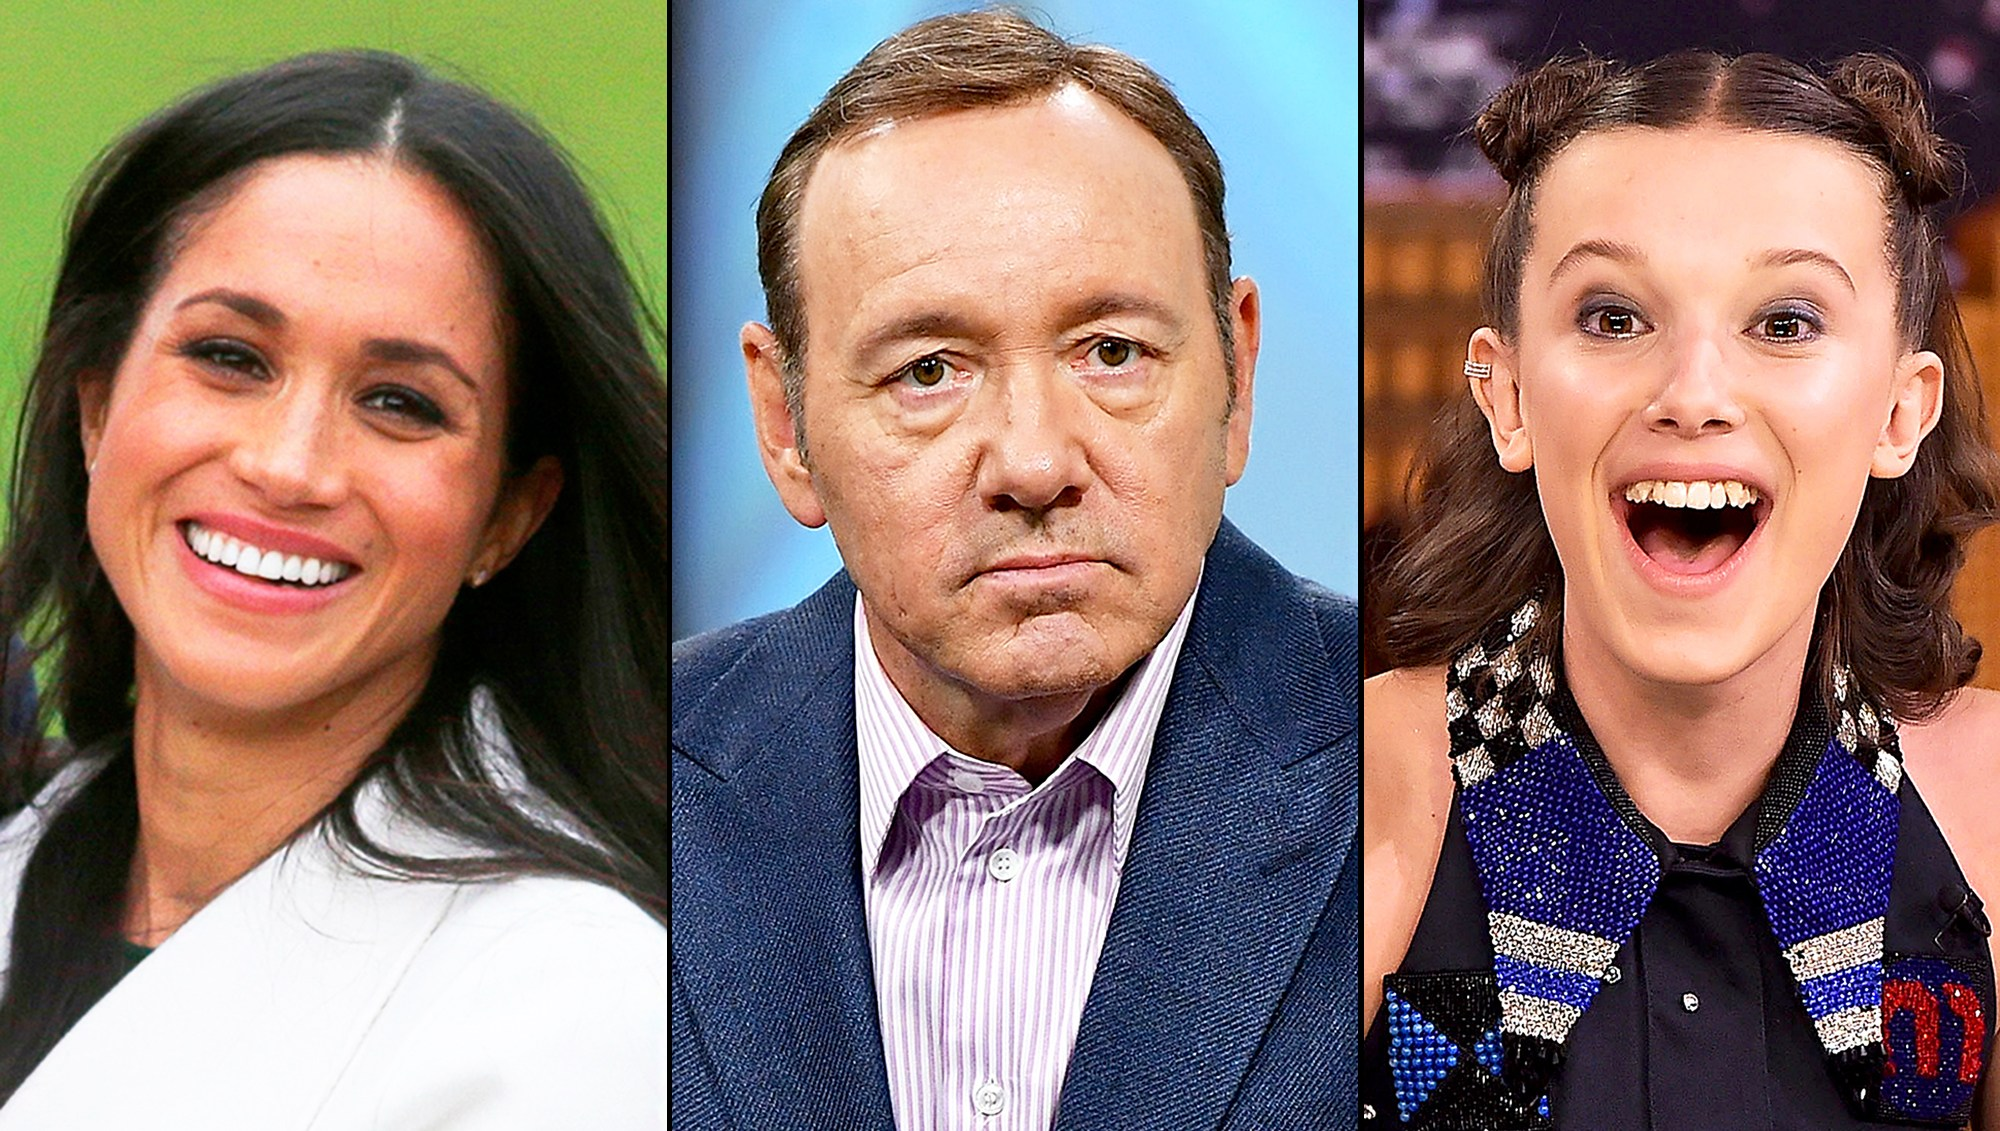 Meghan Markle, Kevin Spacey and Millie Bobby Brown